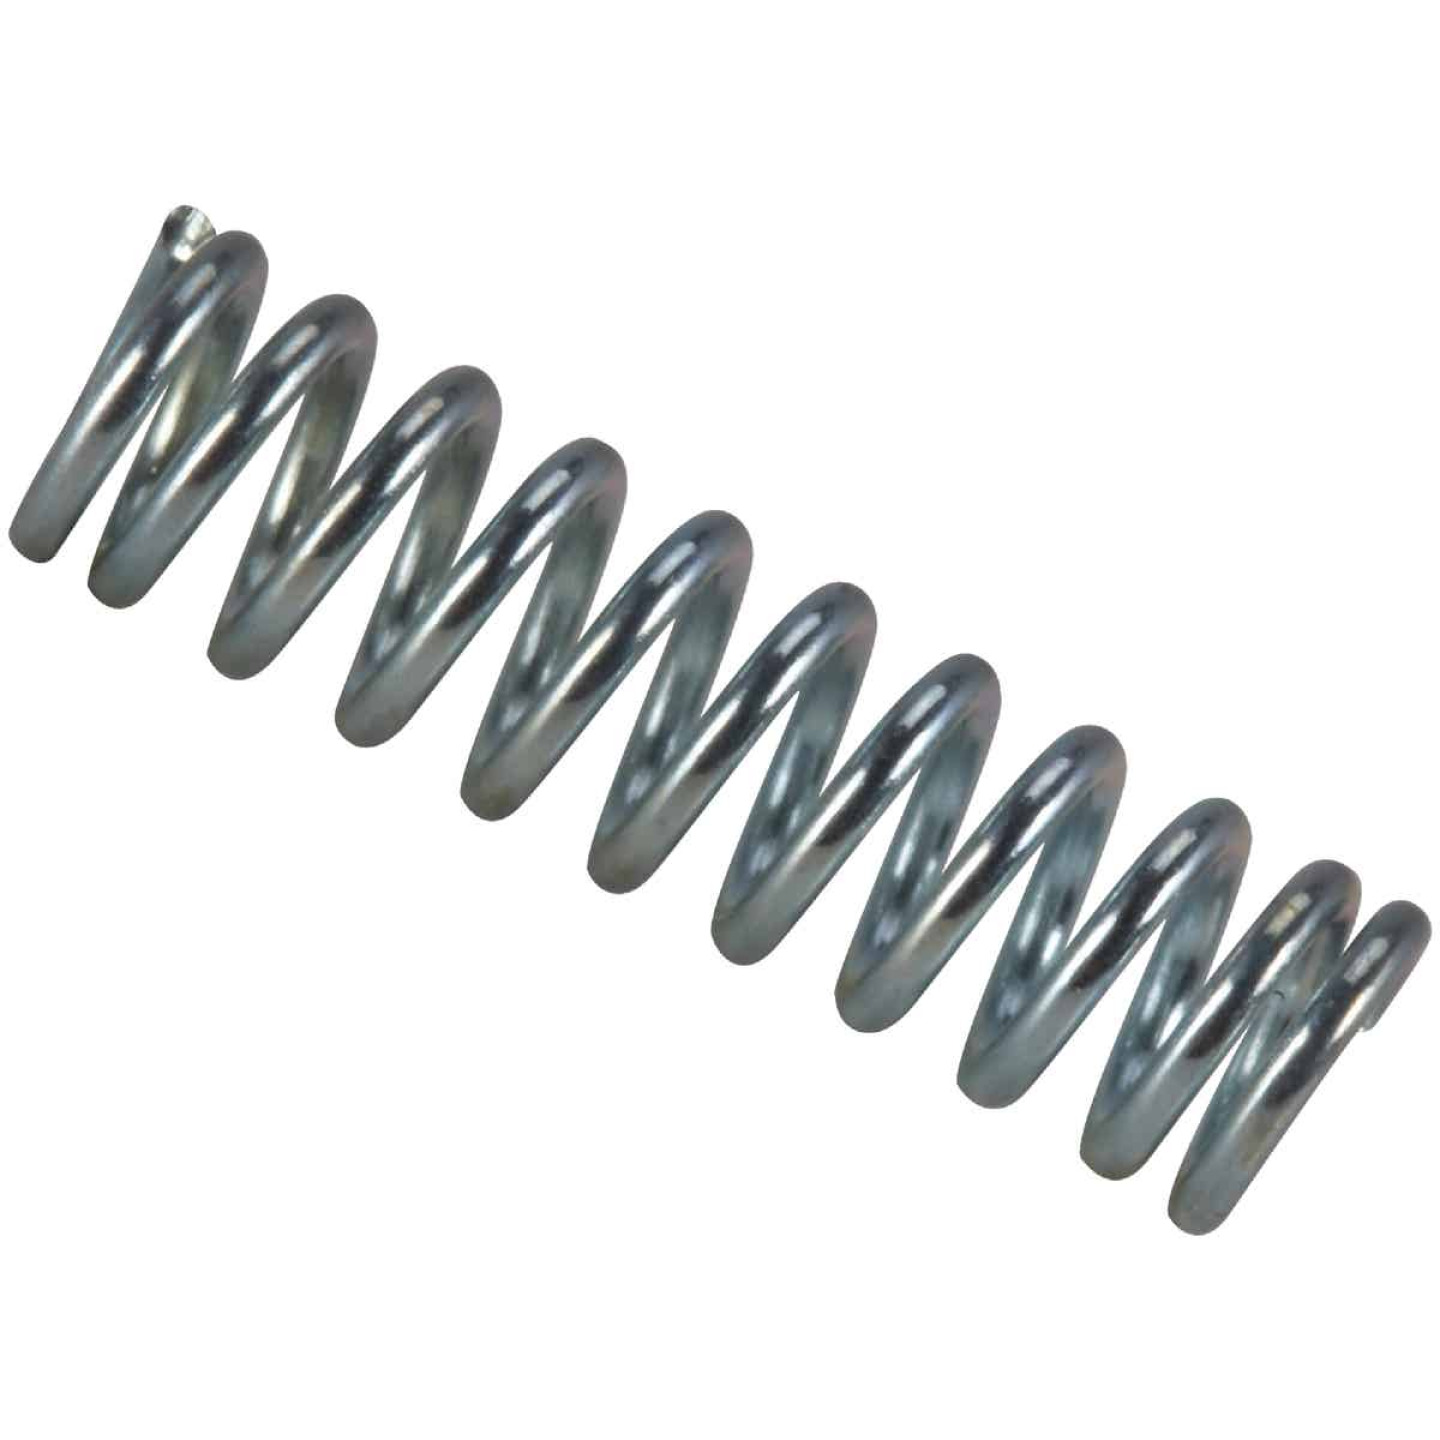 Century Spring 2 In. x 3/4 In. Compression Spring (2 Count) Image 1